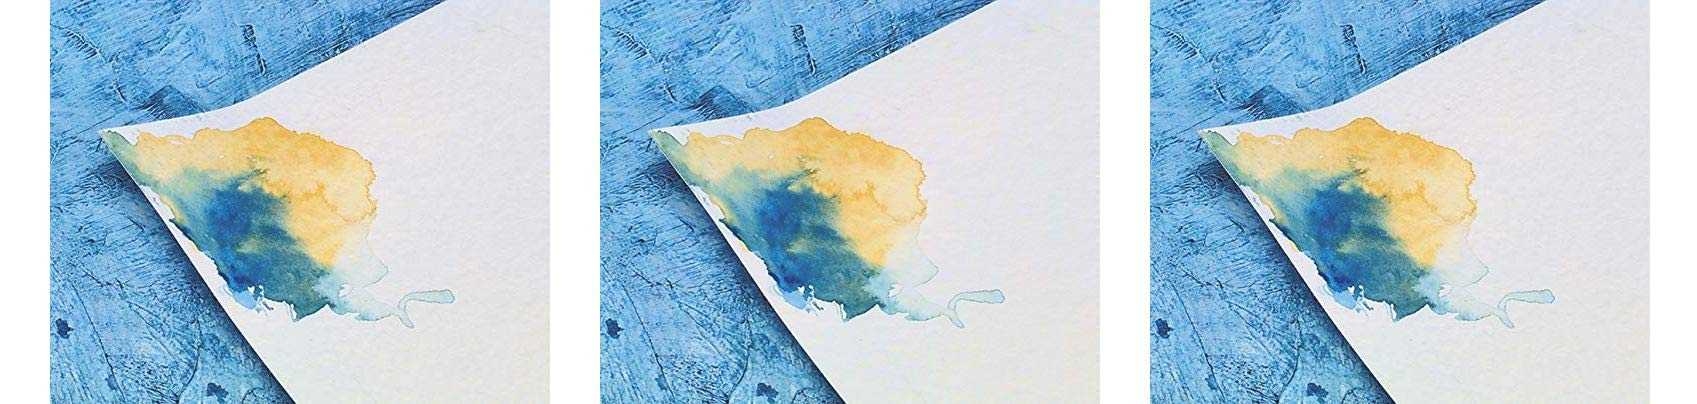 Strathmore 400 Artist Watercolor Paper, 140 lb, 22 x 30 Inches, 10 Sheets (Thrее Рack) by Strathmore